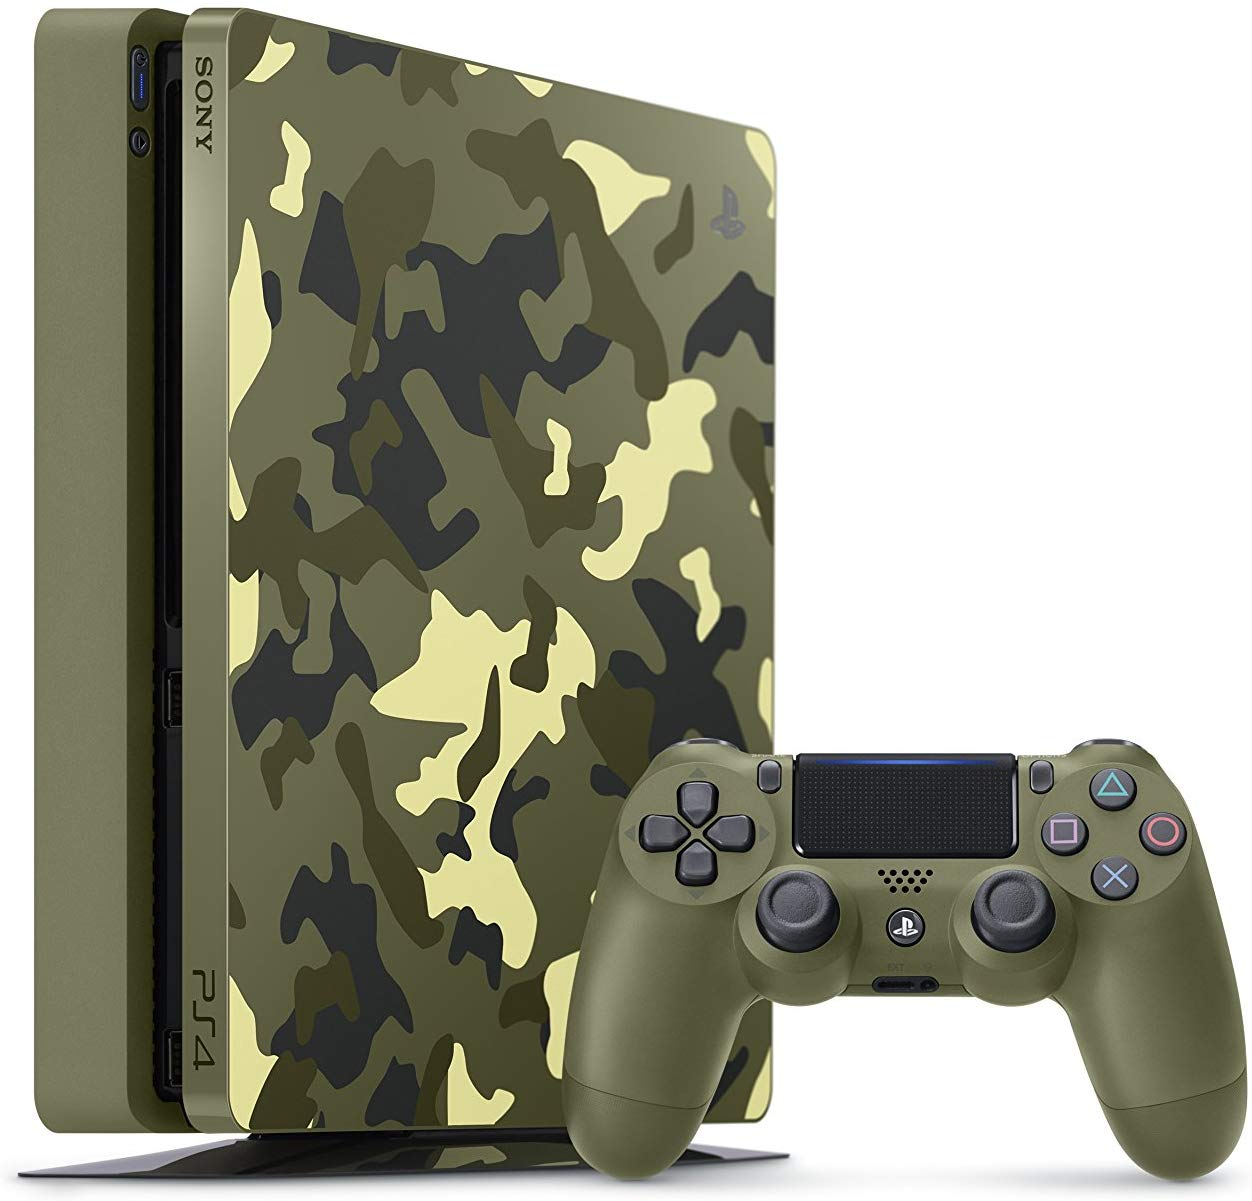 Sony PlayStation 4 Slim 1TB Limited Edition Console - Call of Duty WWII Bundle